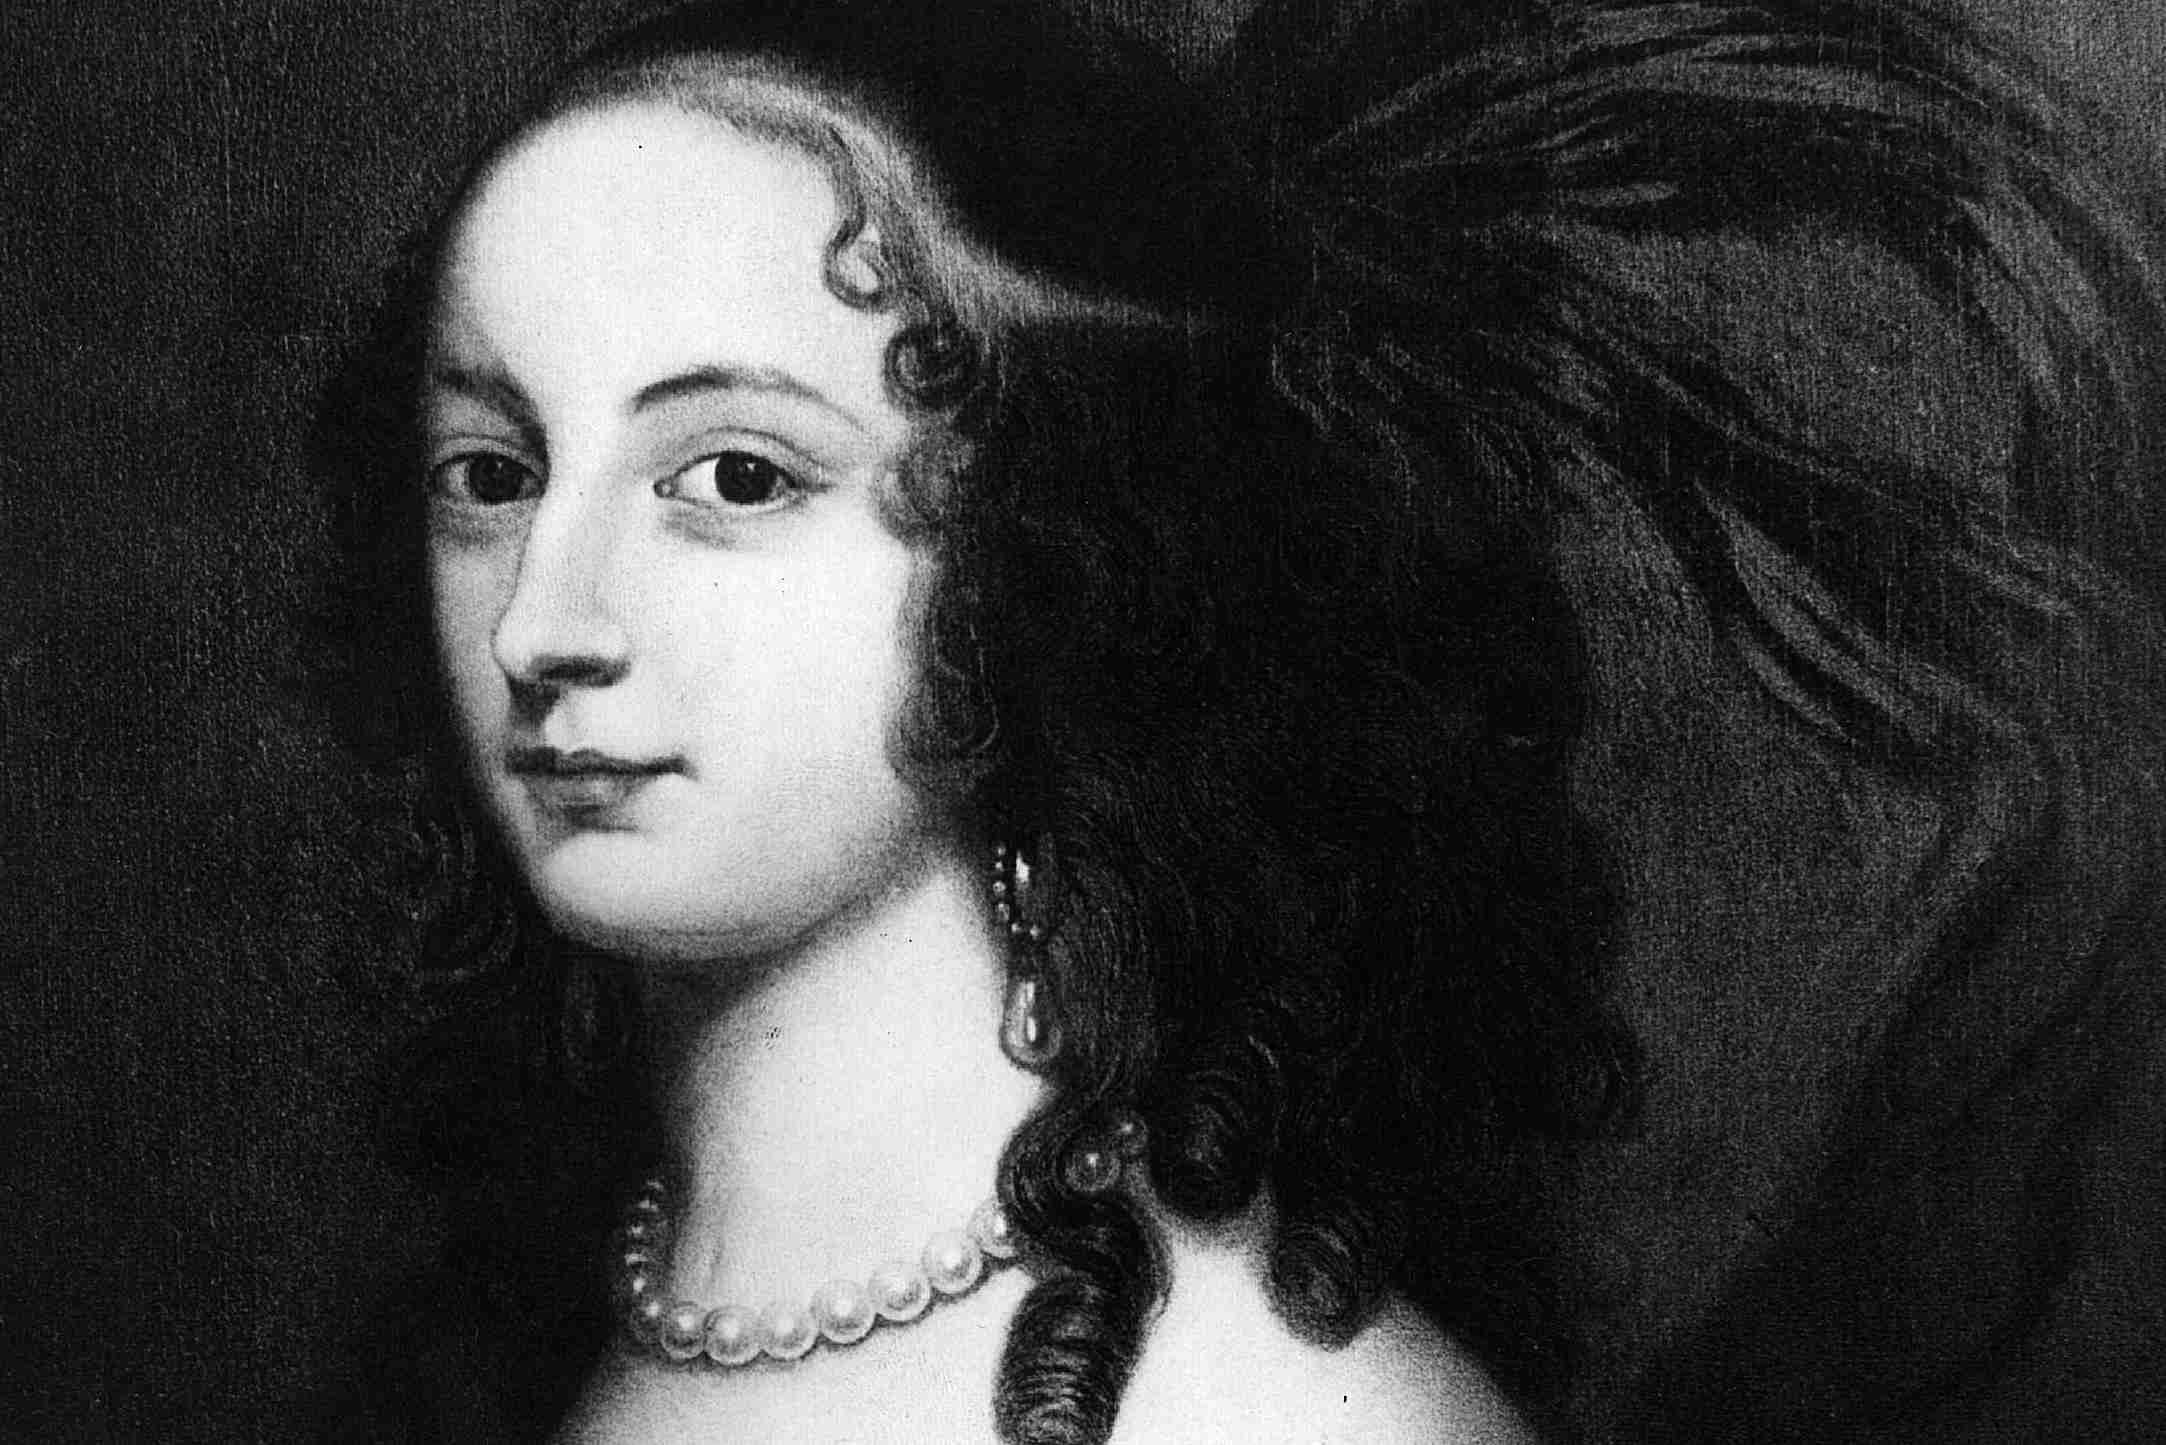 Sophia of Hanover, Electress of Hanover from a painting by Gerard Honthorst